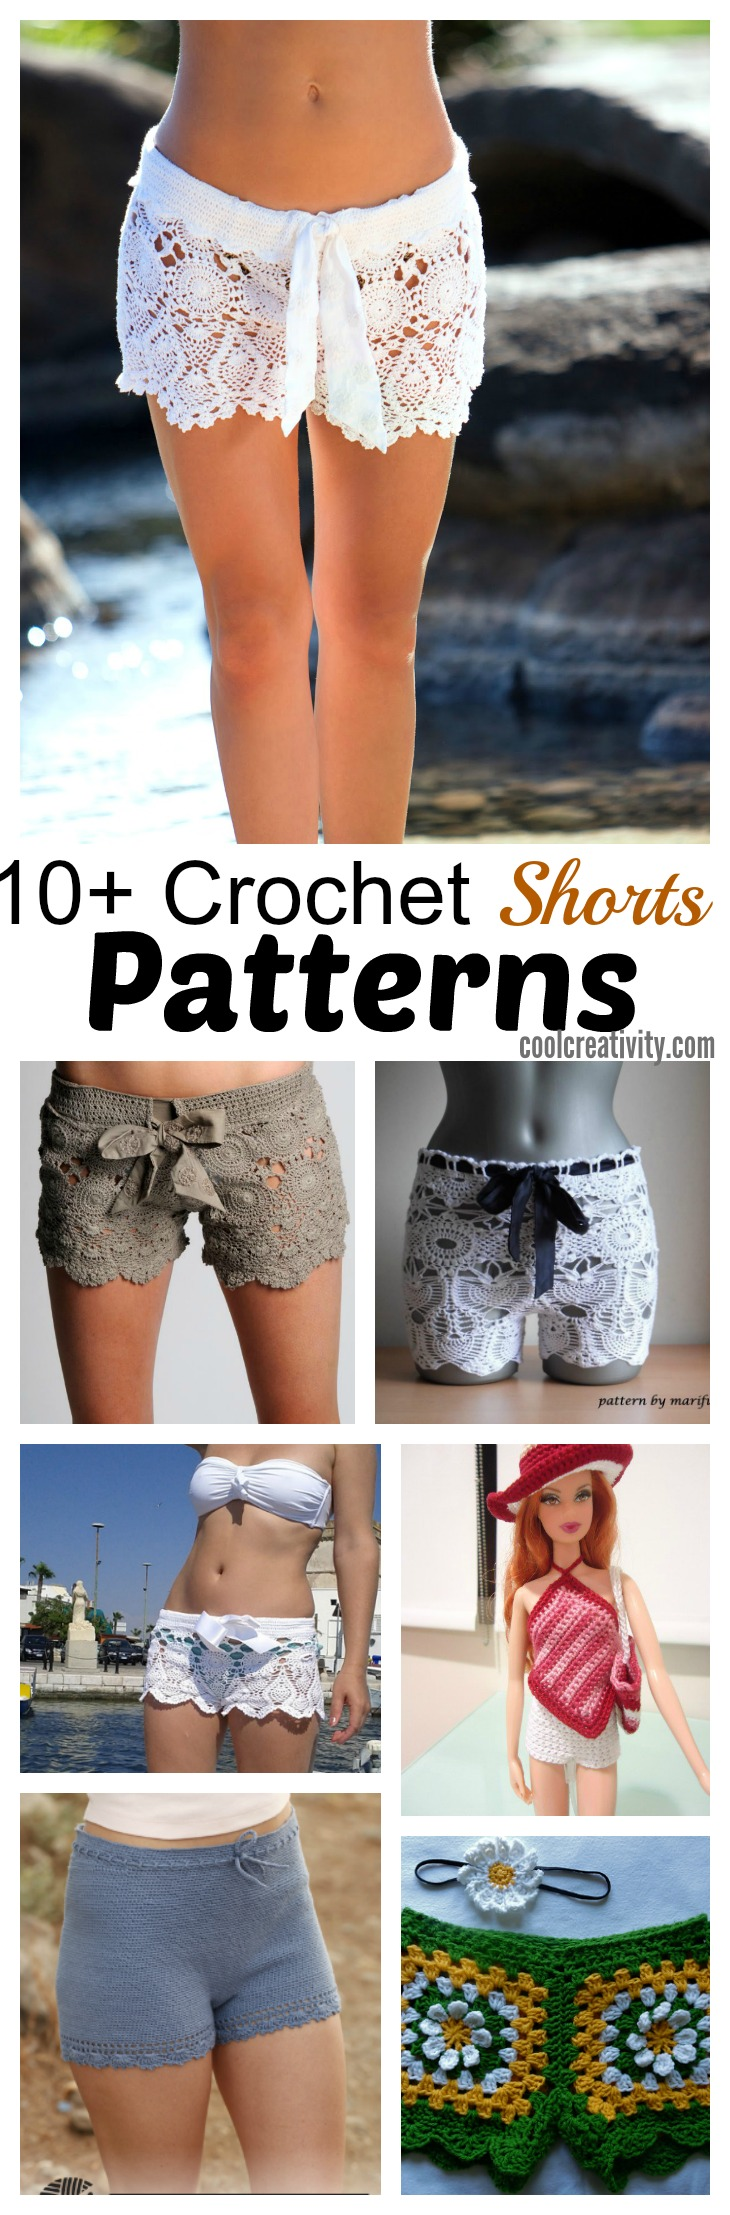 10+ Gorgeous Crochet Shorts Patterns in Ravishing and ...